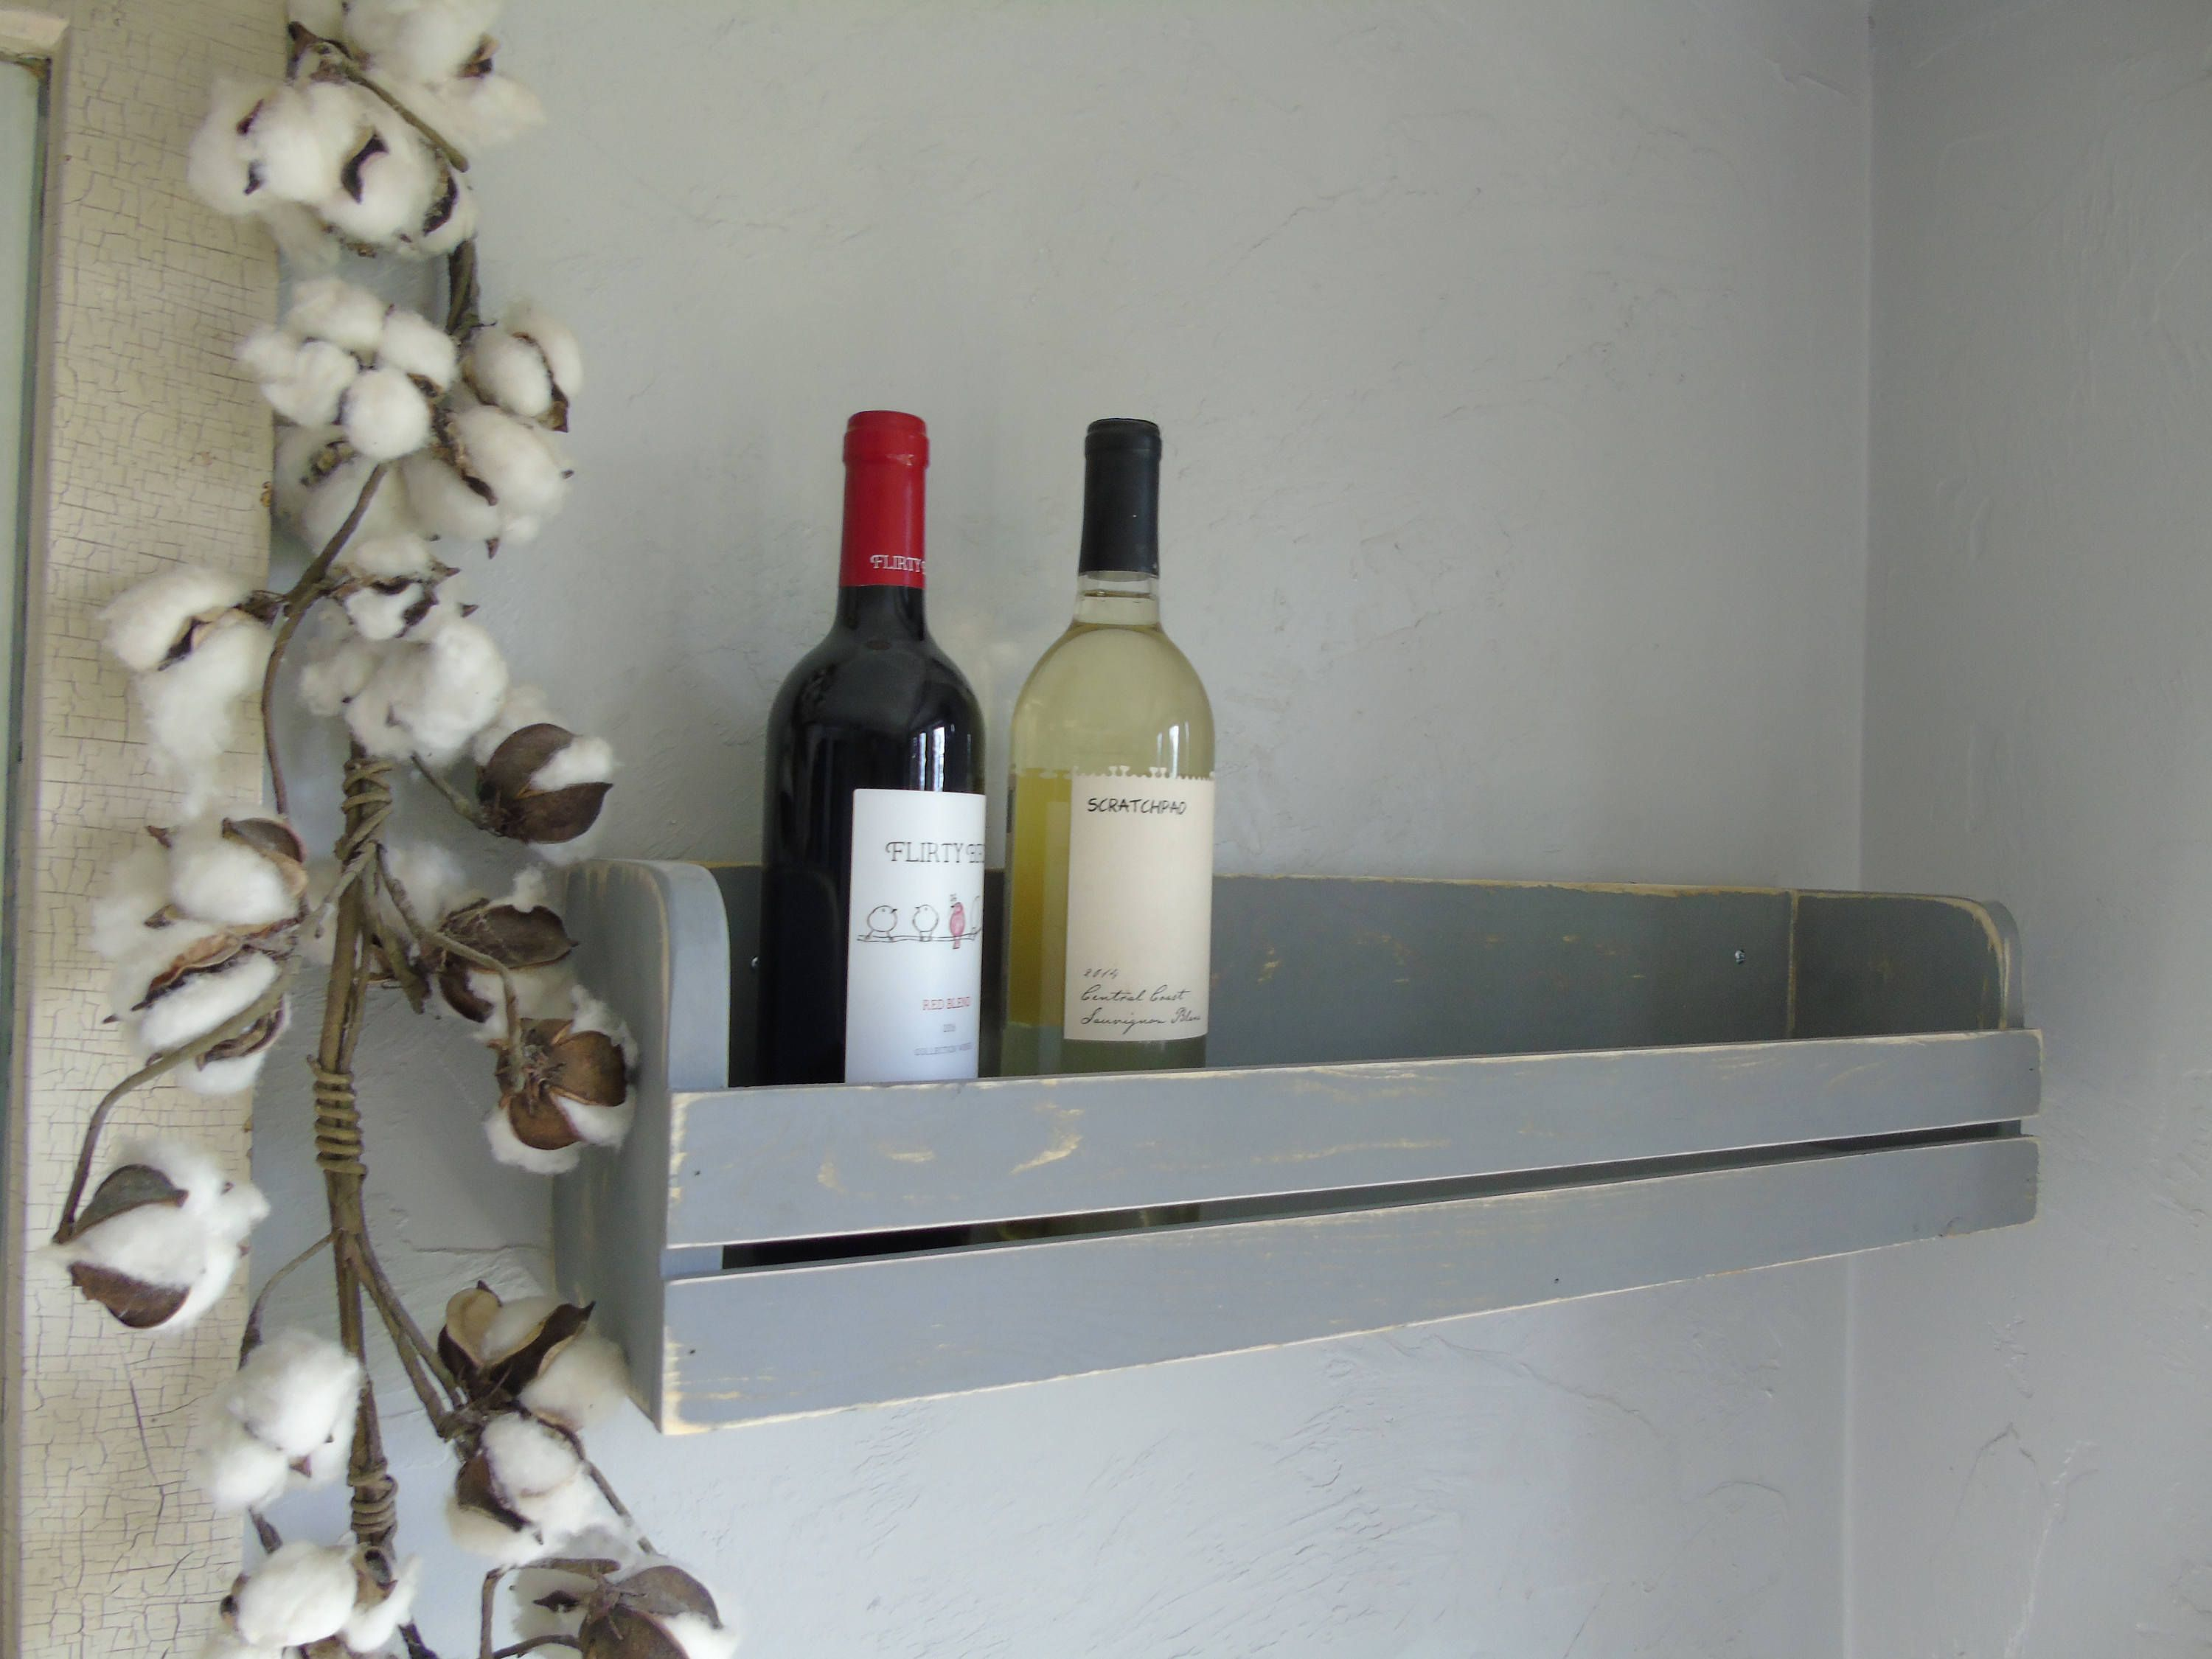 splendid ht wine wall and hanging m along mount standing from lamp board plans building bottom classic diagonal then calm wooden with rack a spacing enamour paint also